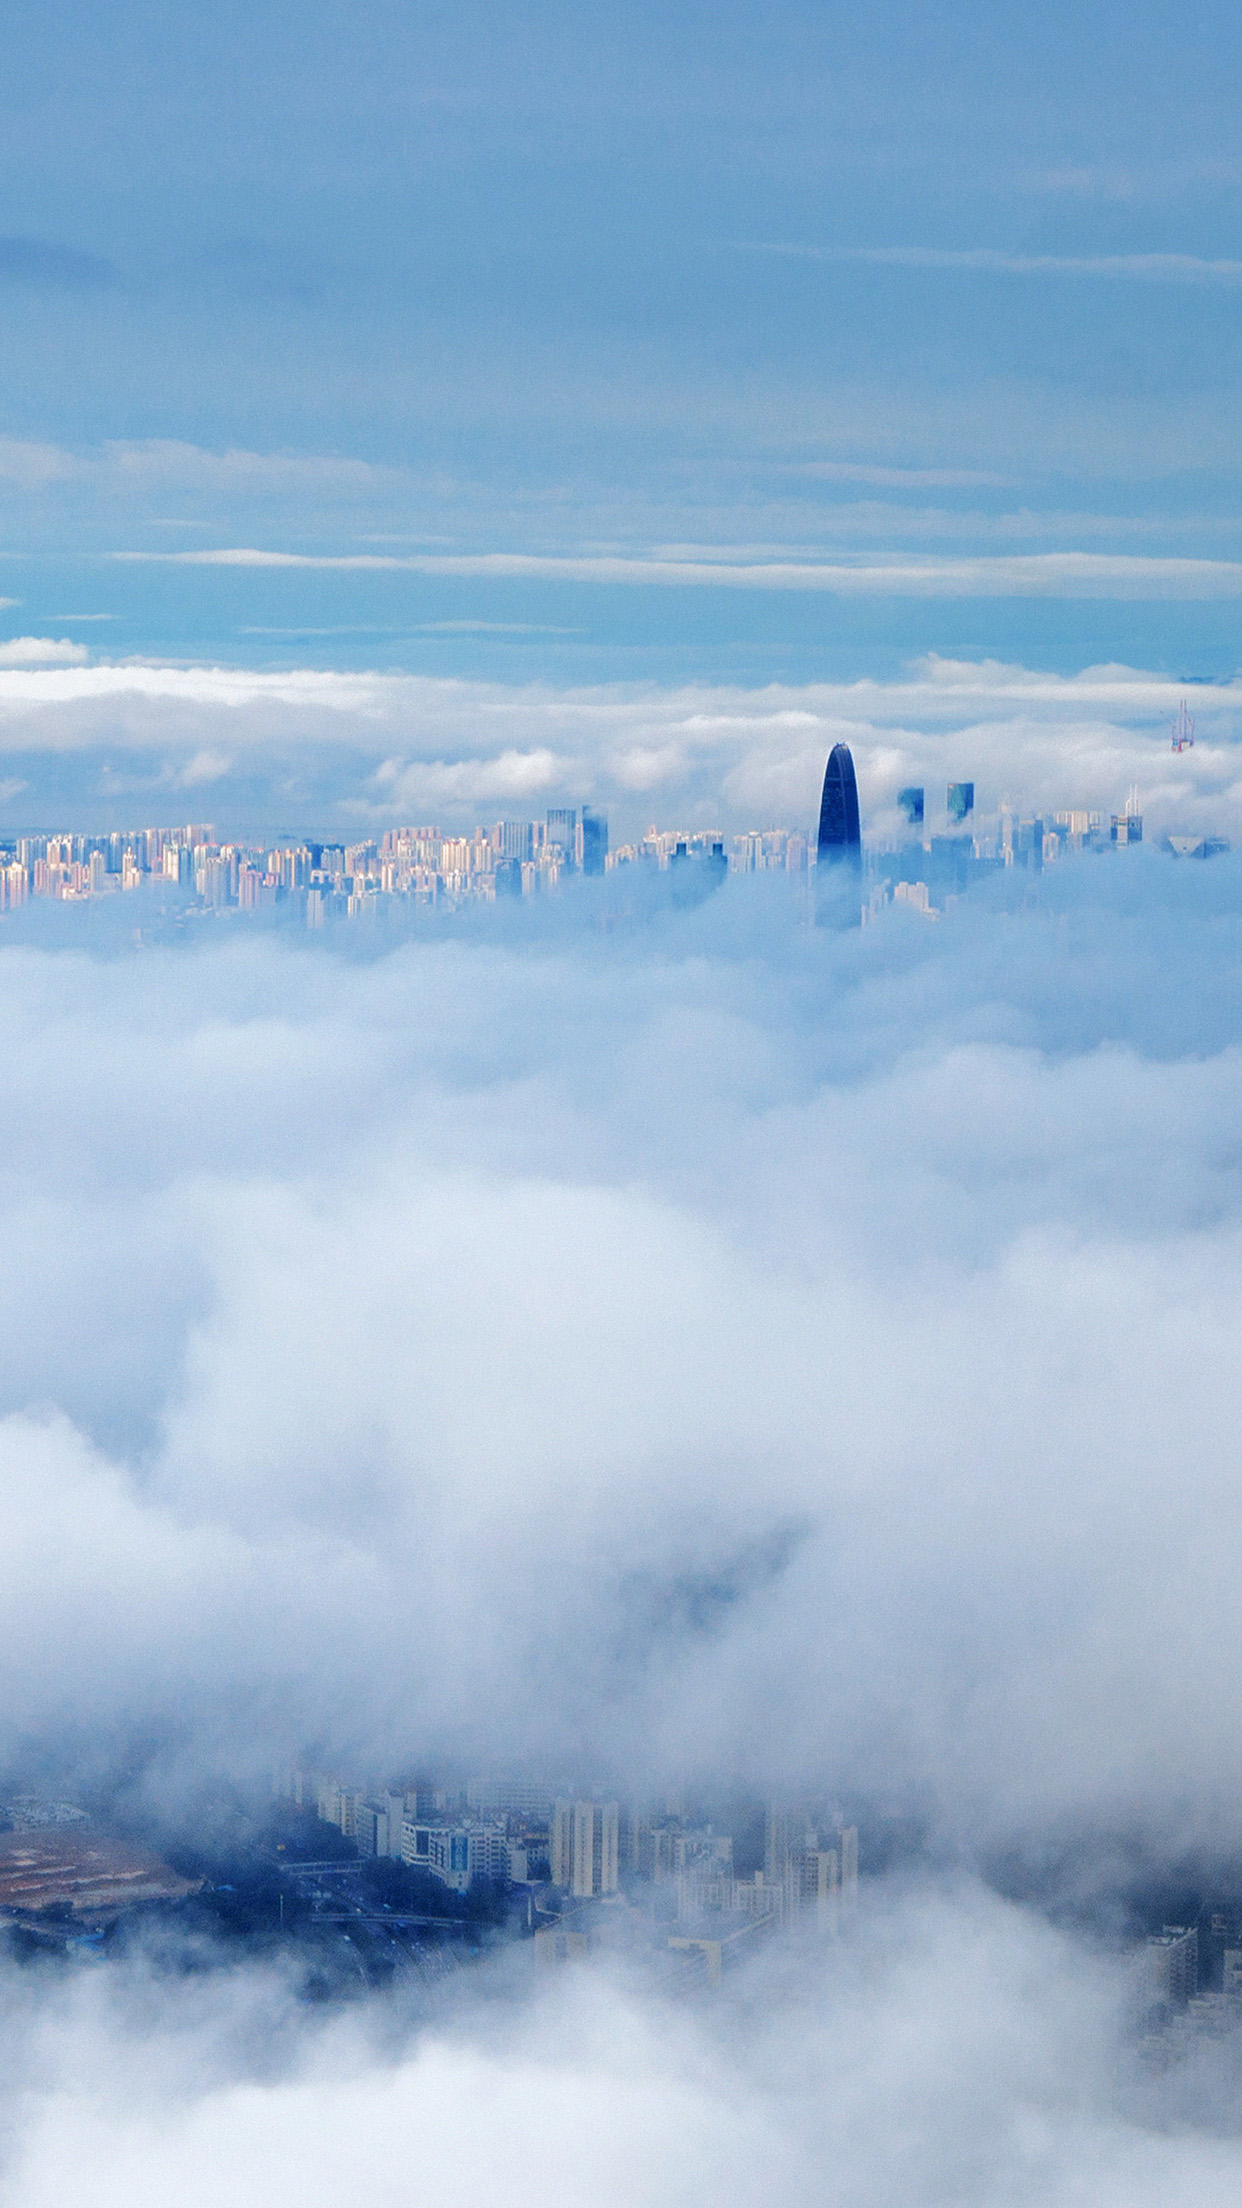 City In Fog Cloud Nature Sky Android wallpaper